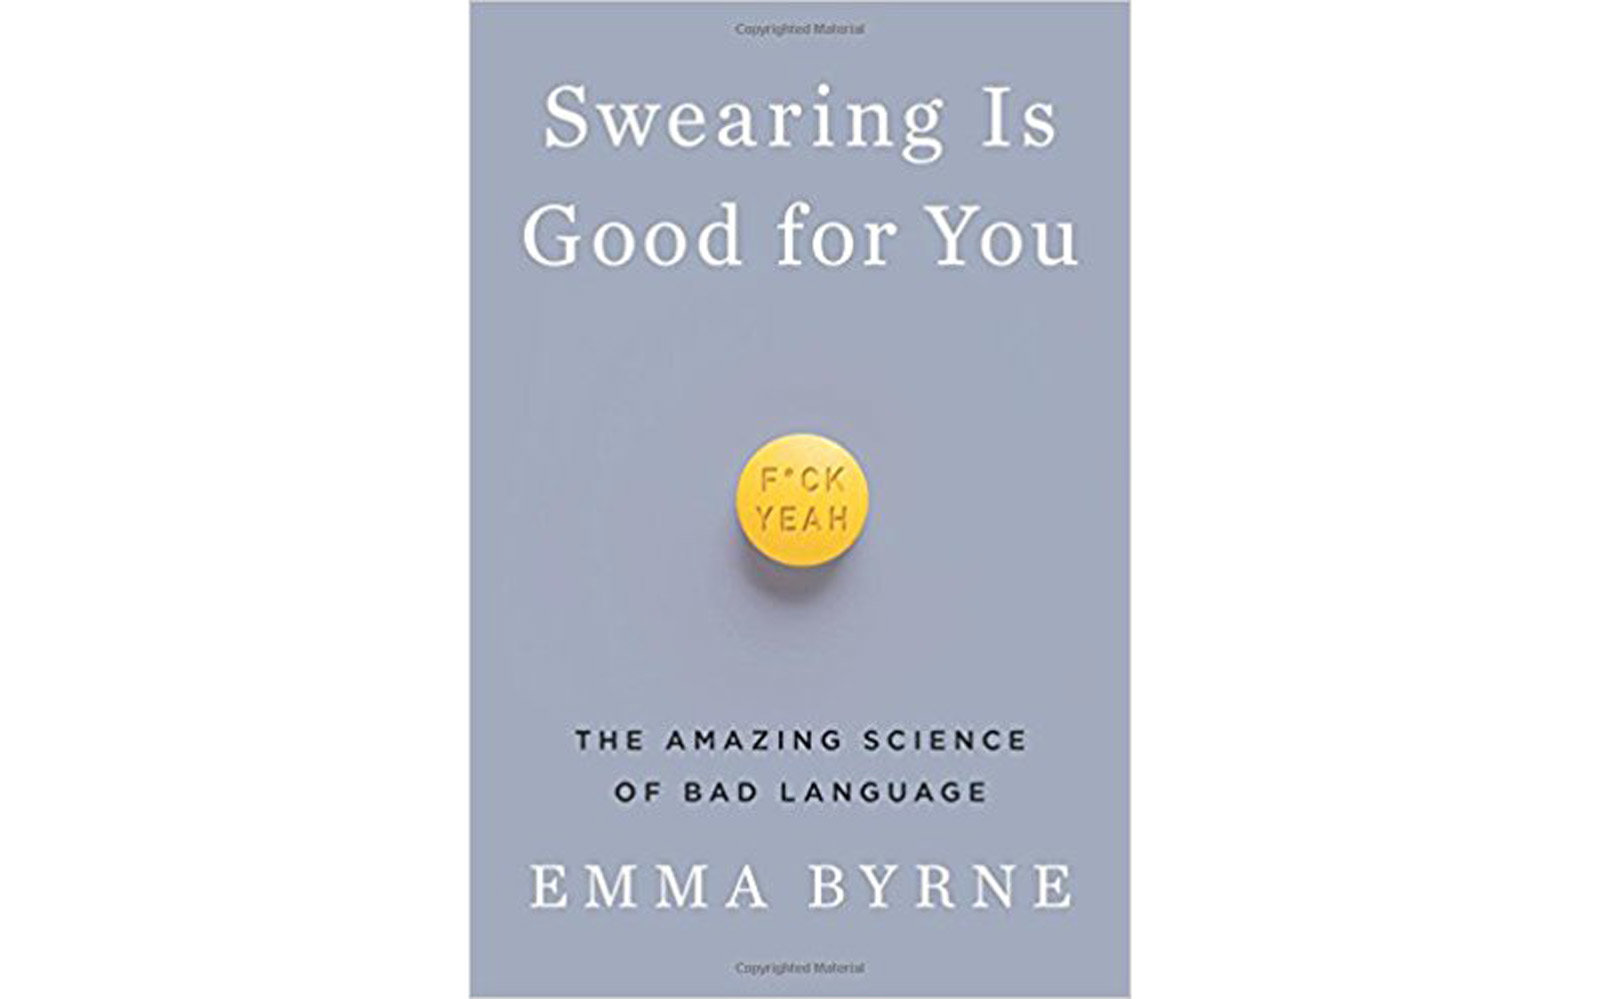 'Swearing Is Good for You' by Emma Byrne